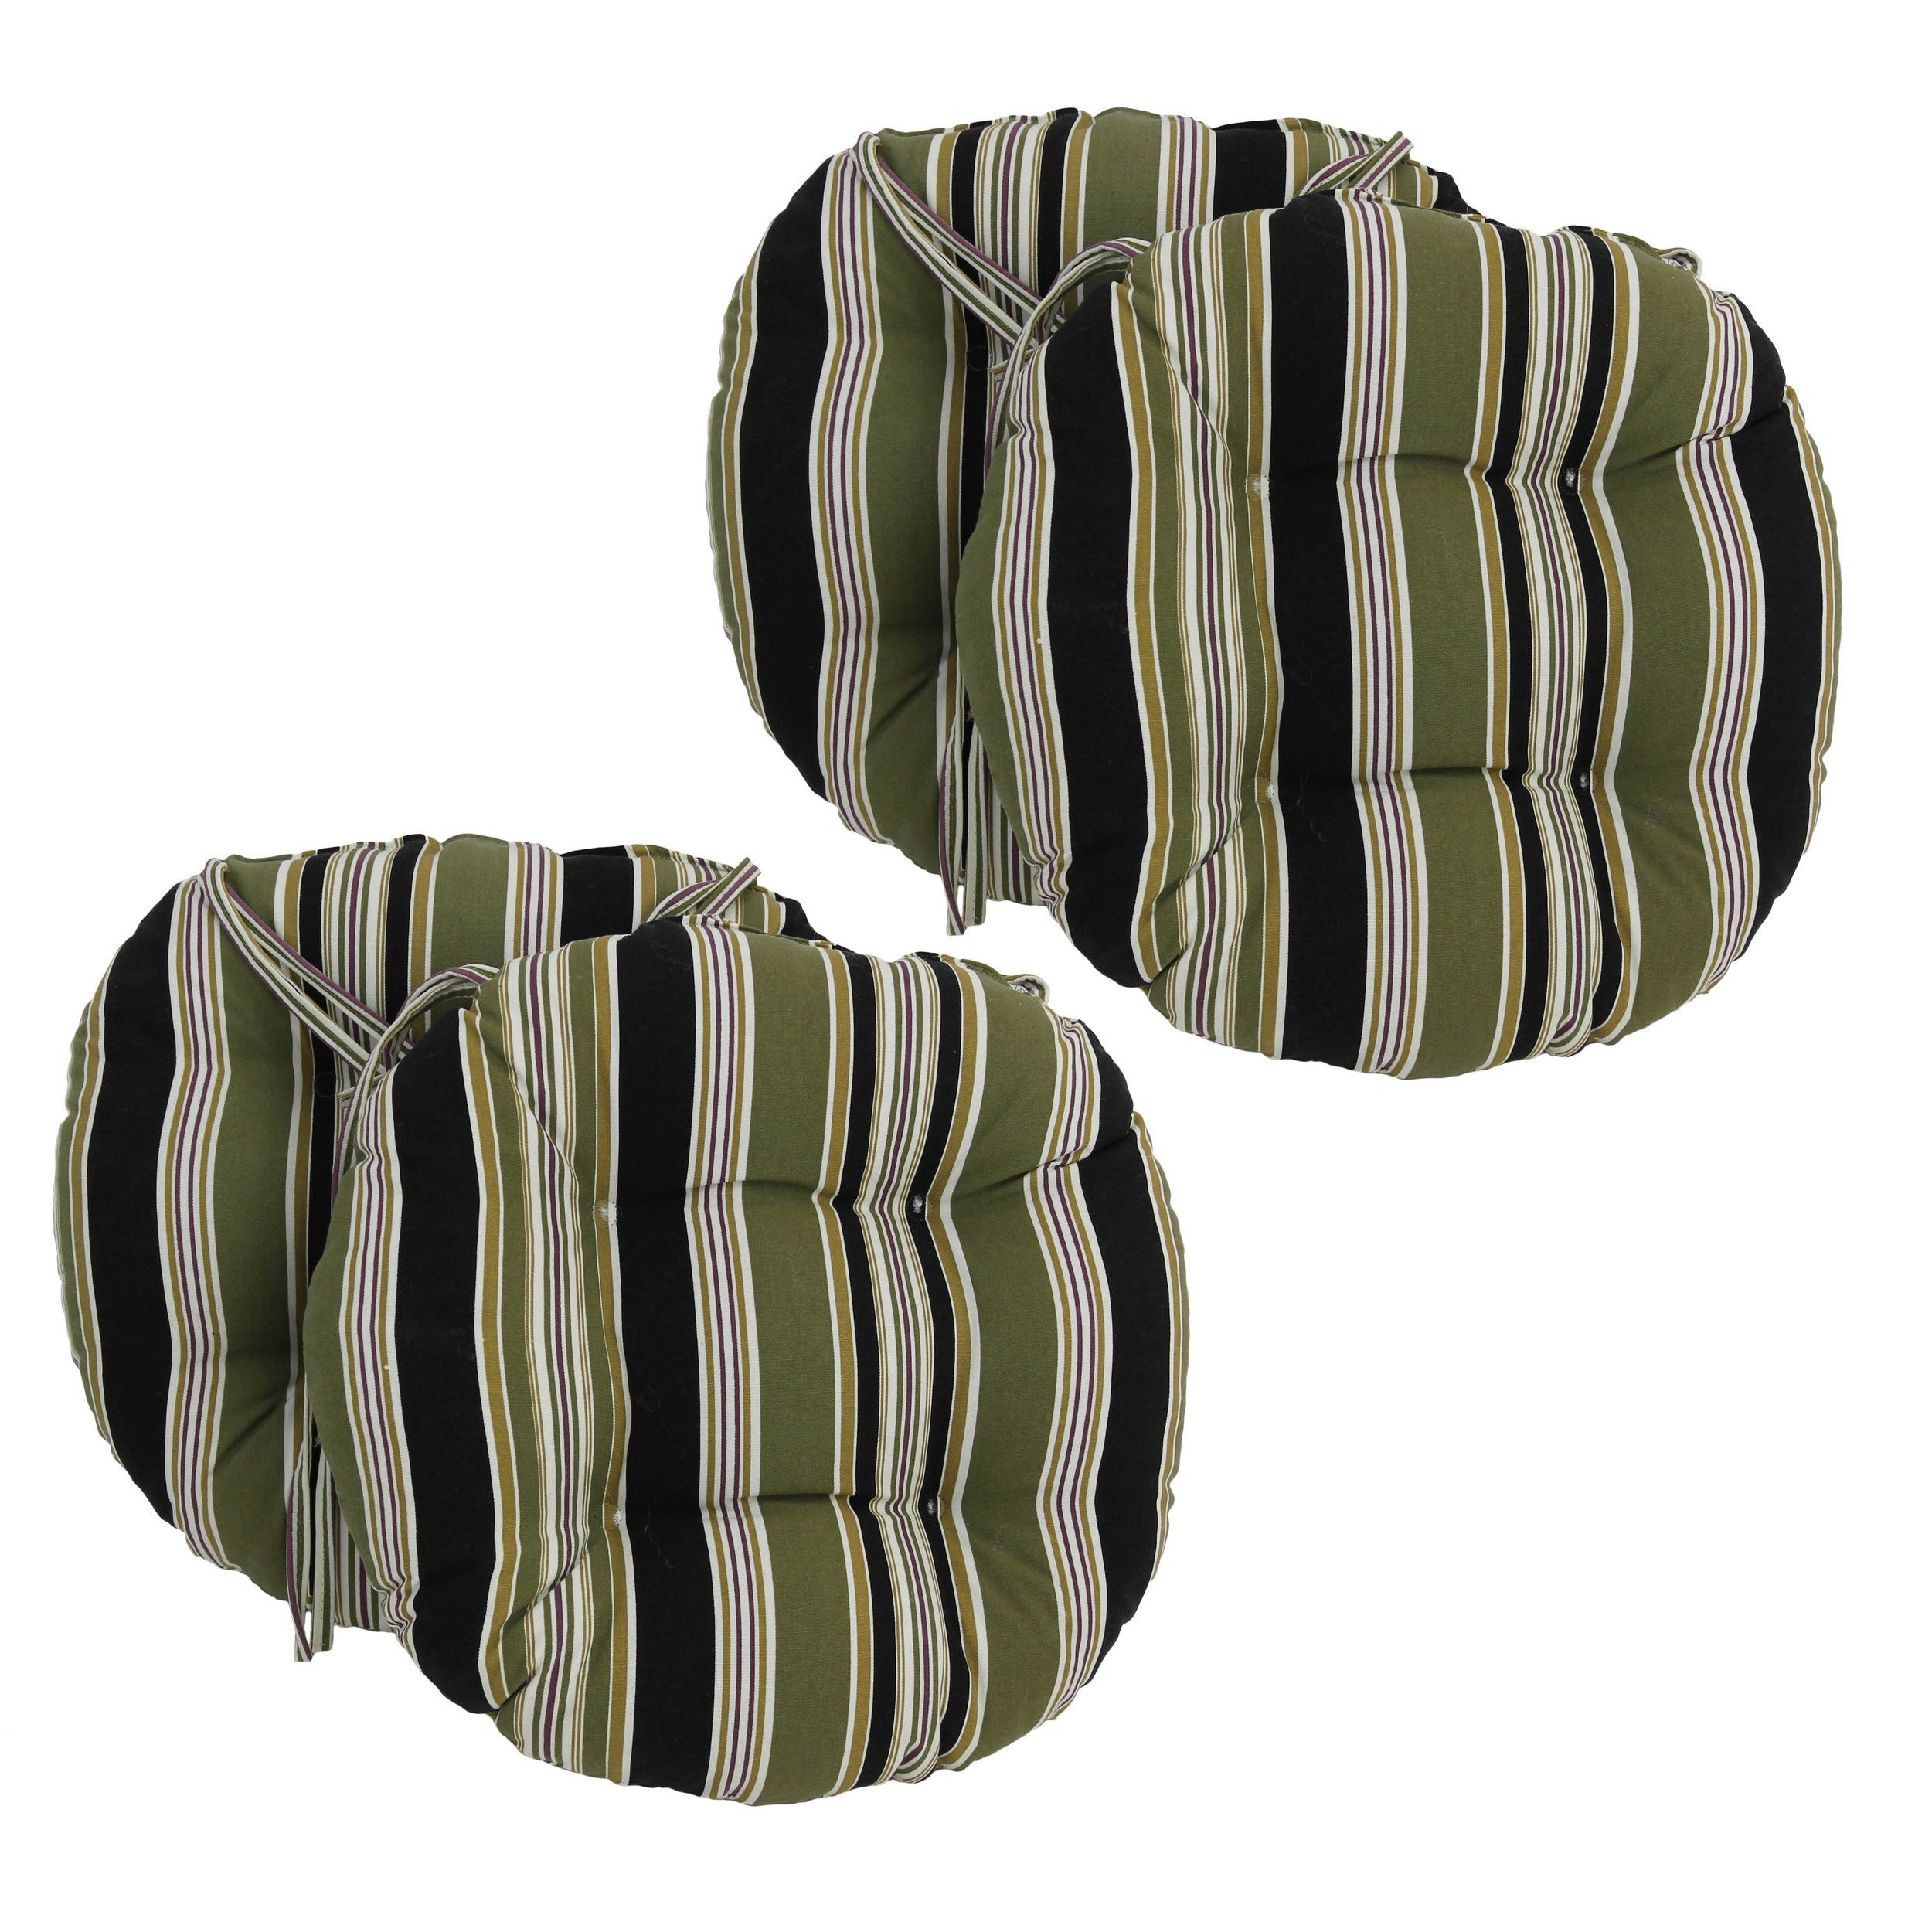 Blazing Needles 16 X 16 Inch Round Outdoor Chair Cushions set of